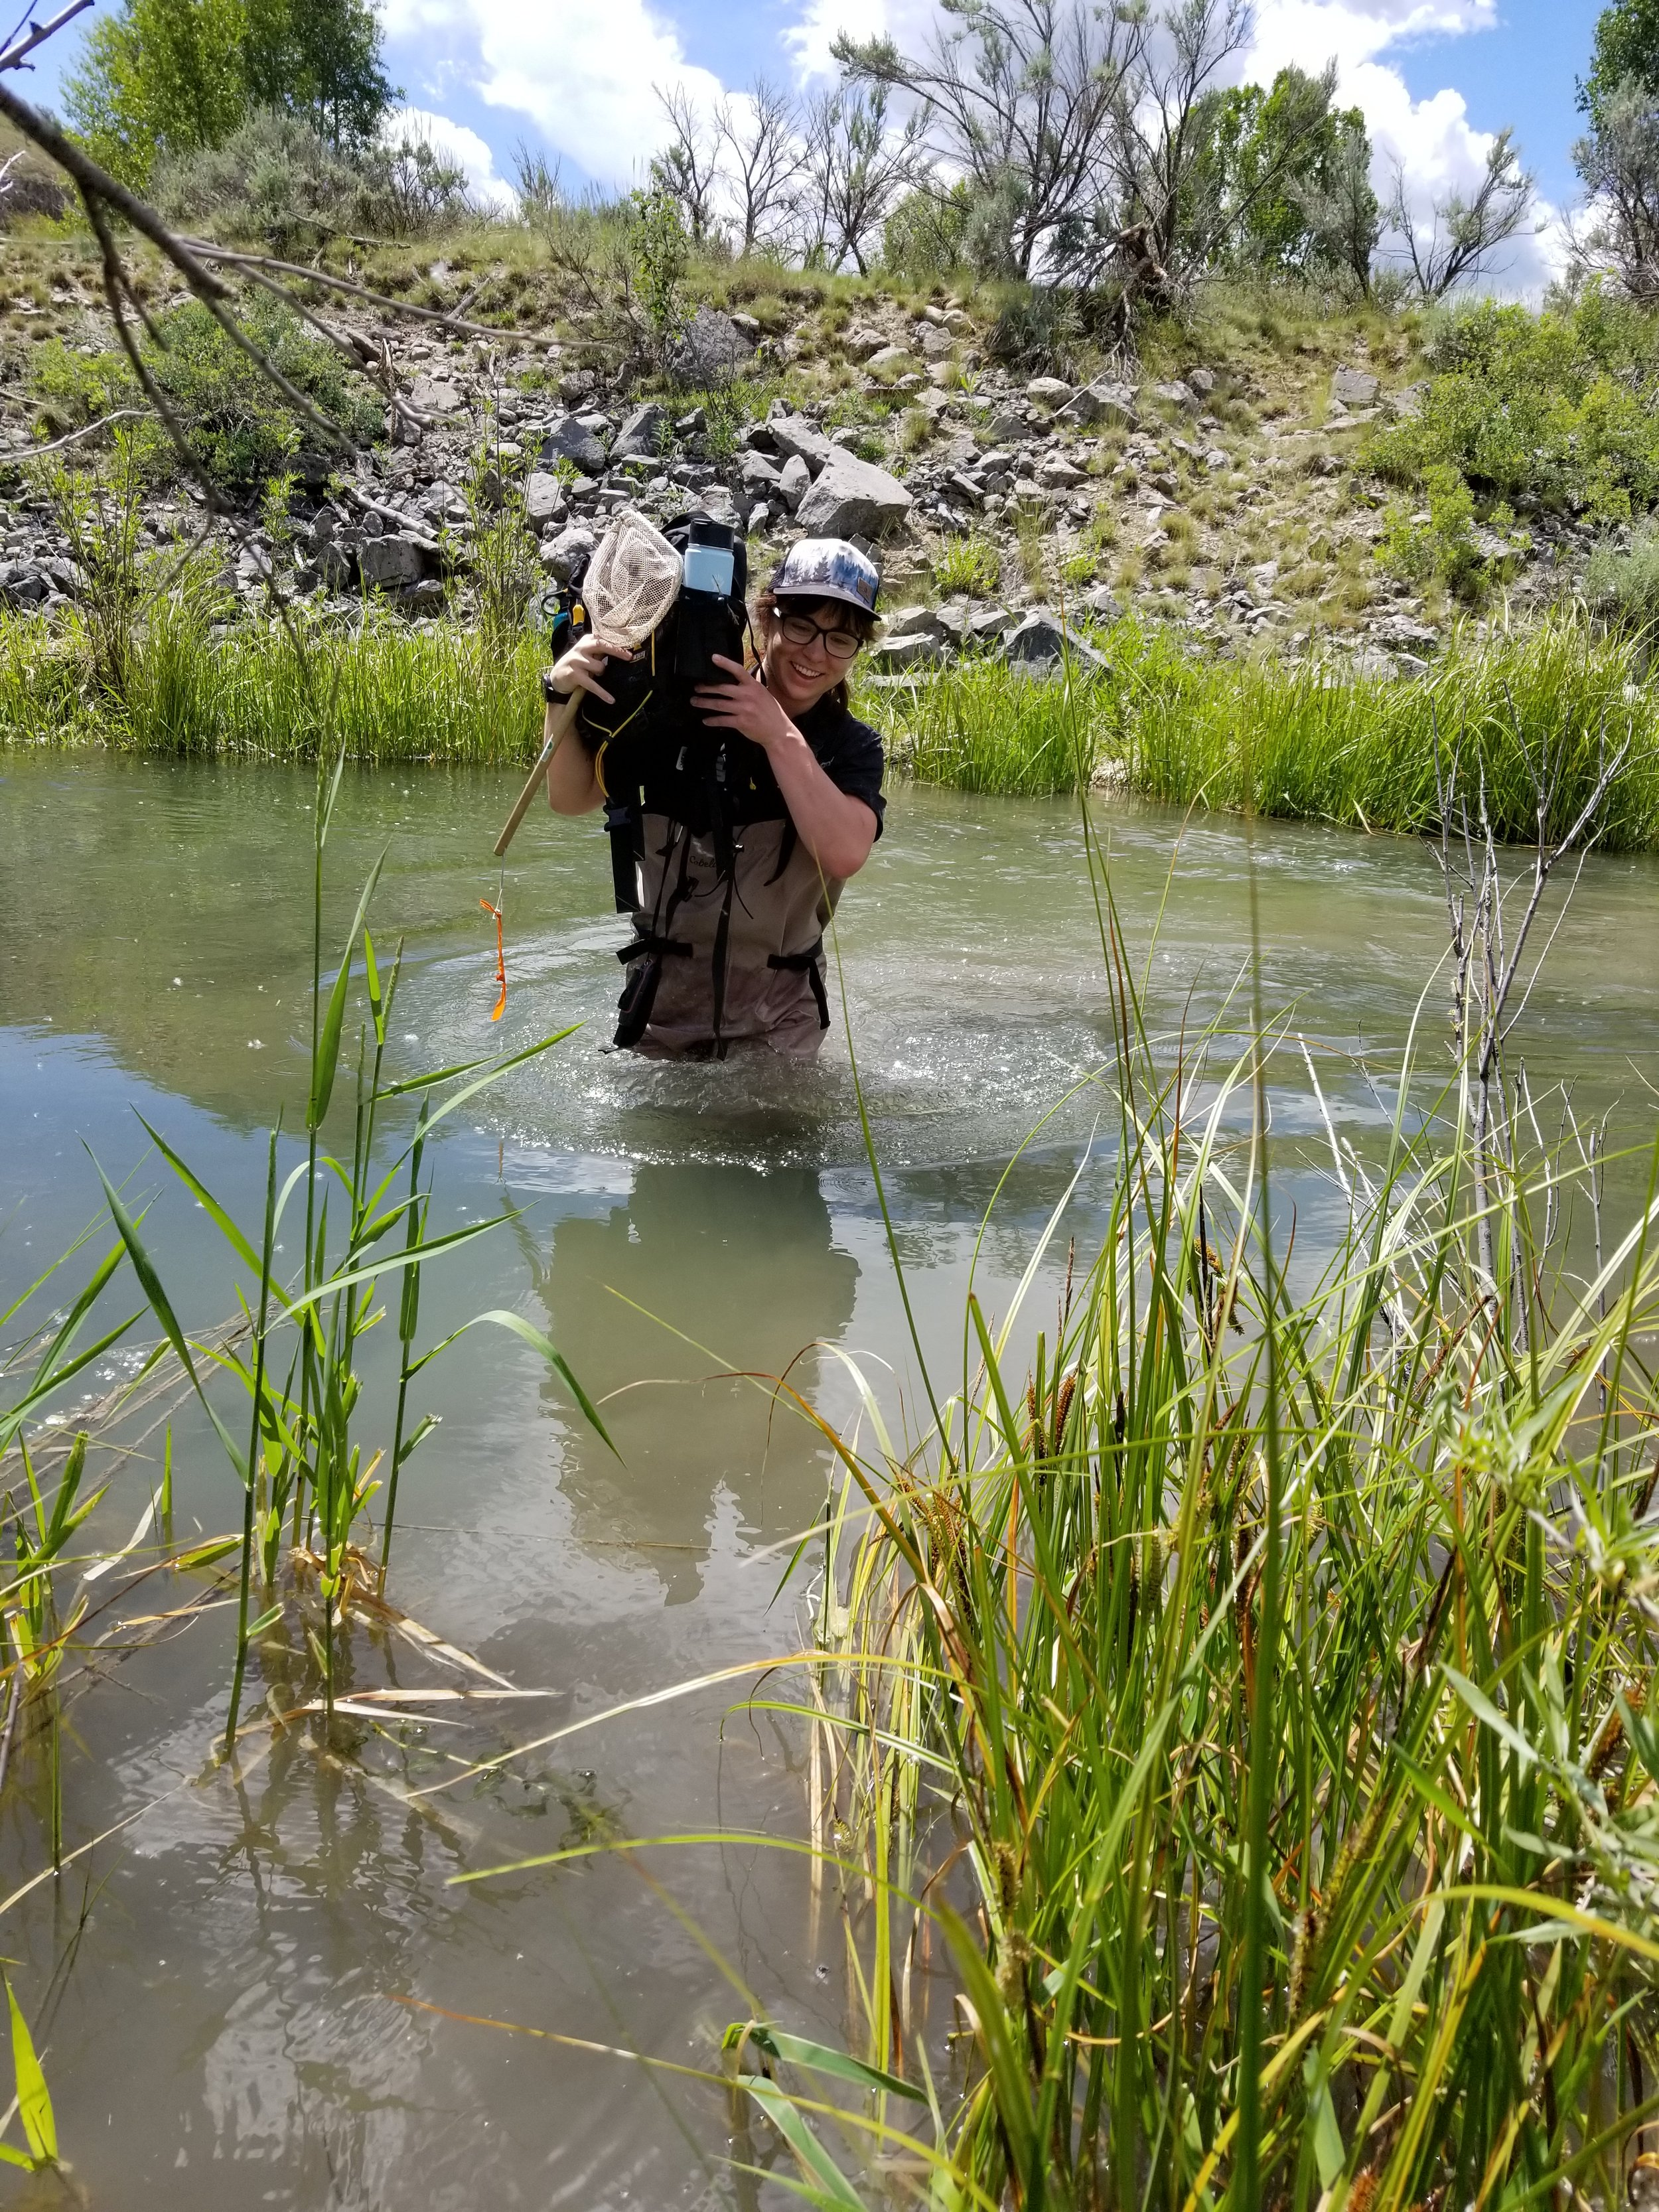 Elyce Gosselin, Teton Conservation District's Natural Resource Technician, going the extra mile for amphibian surveys.